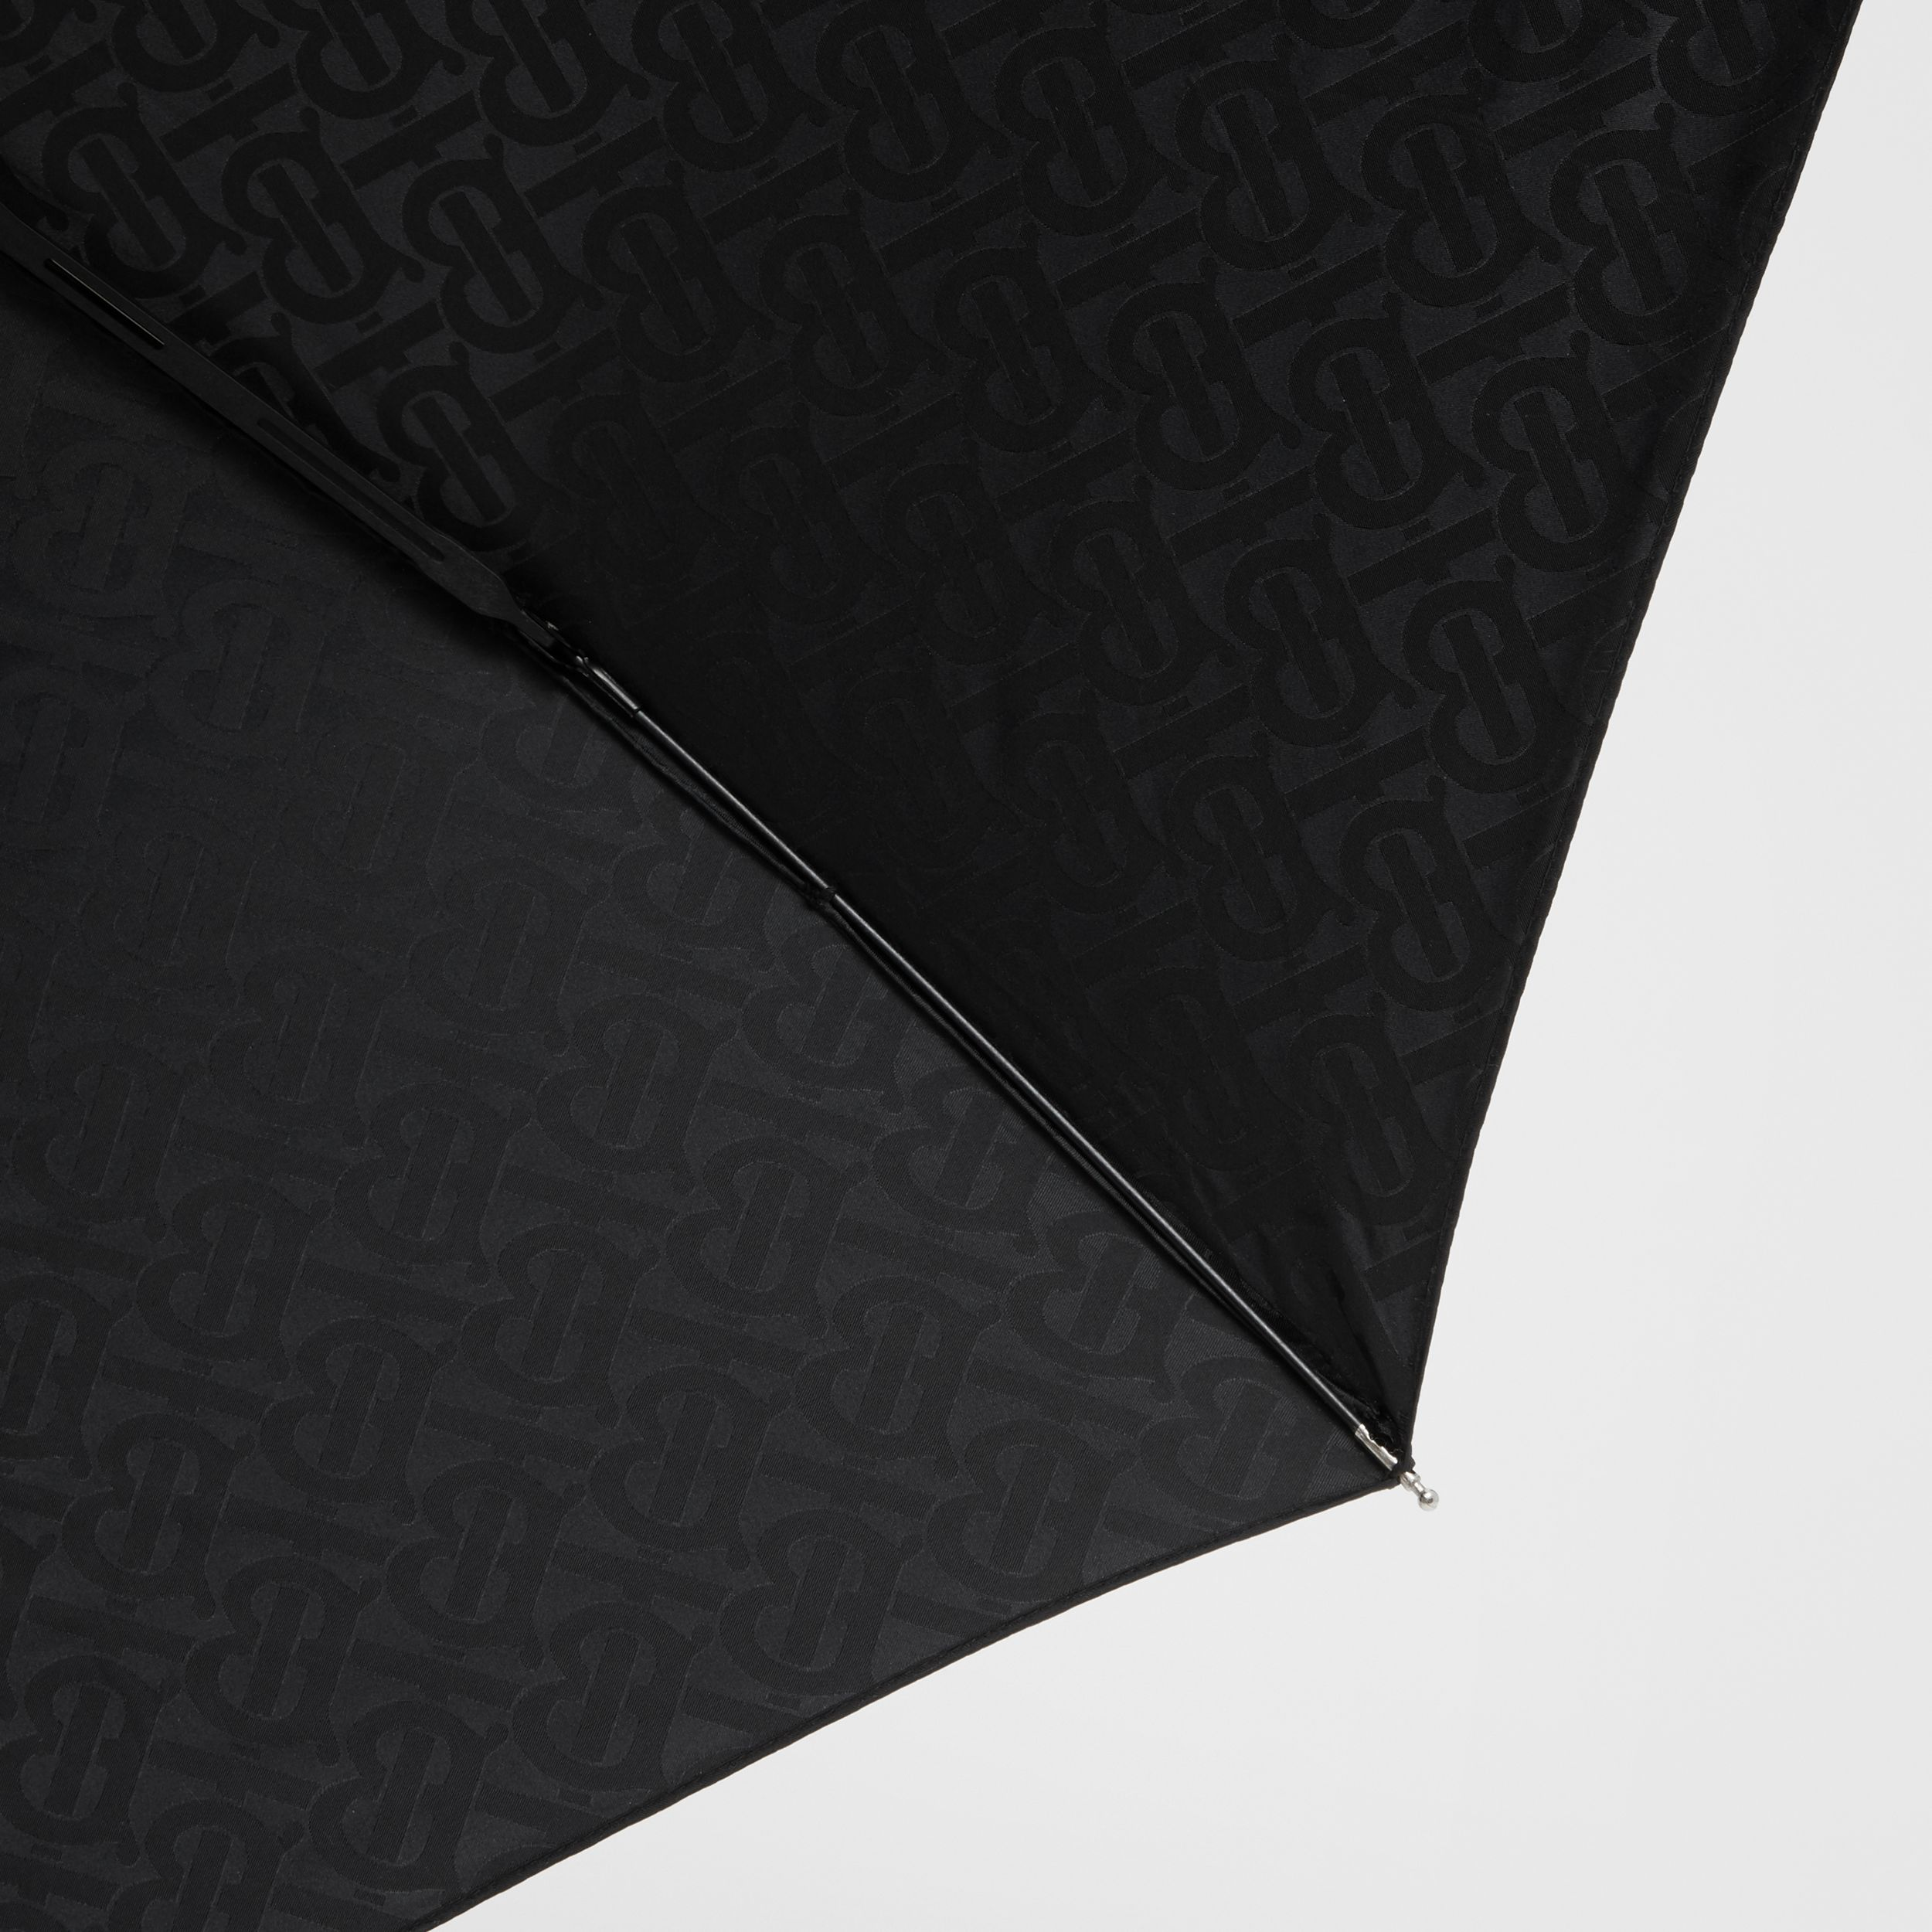 Monogram Print Folding Umbrella in Black | Burberry Canada - 2